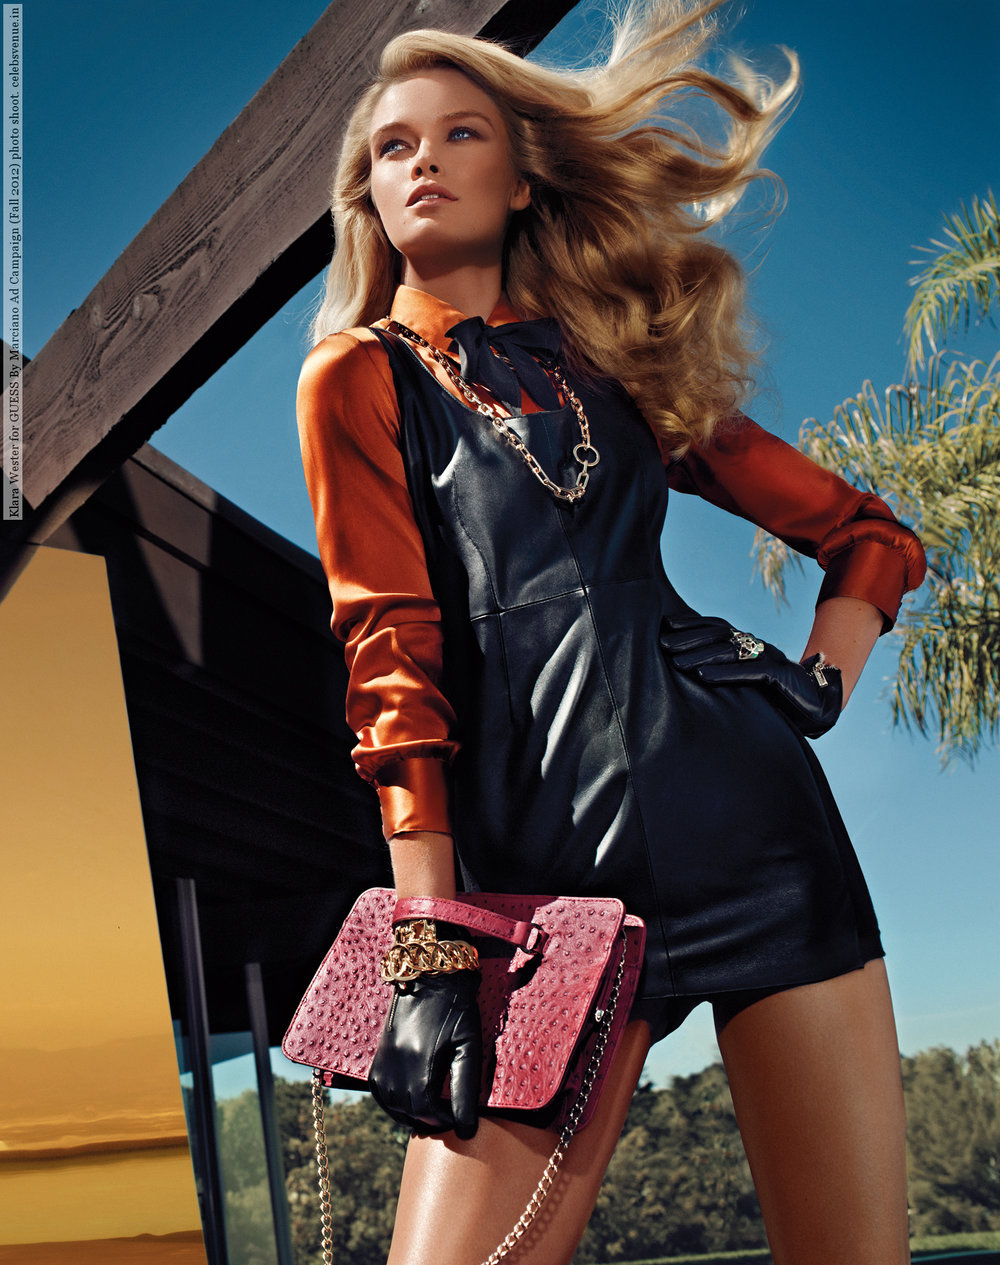 Klara-Wester-for-GUESS-By-Marciano-Ad-Campaign-Fall-2012-photo-shoot-002.jpg